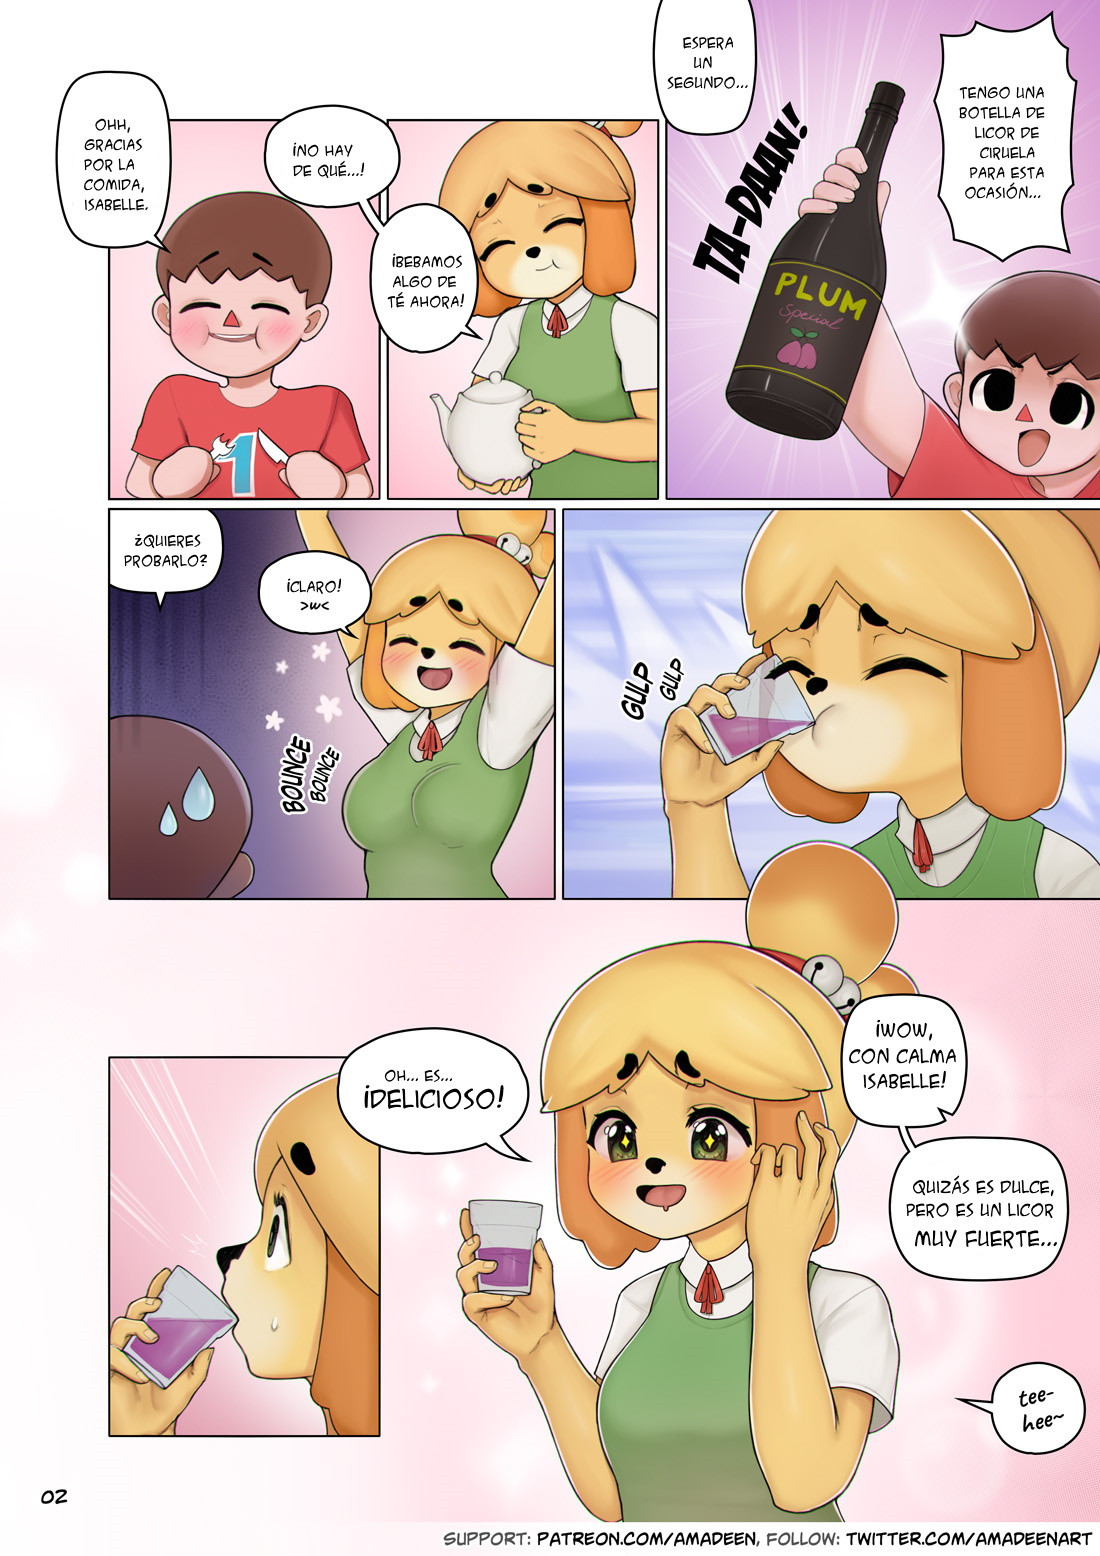 Animal Crossing Juegos Porno amadeen] isabelle's lunch incident (animal crossing)